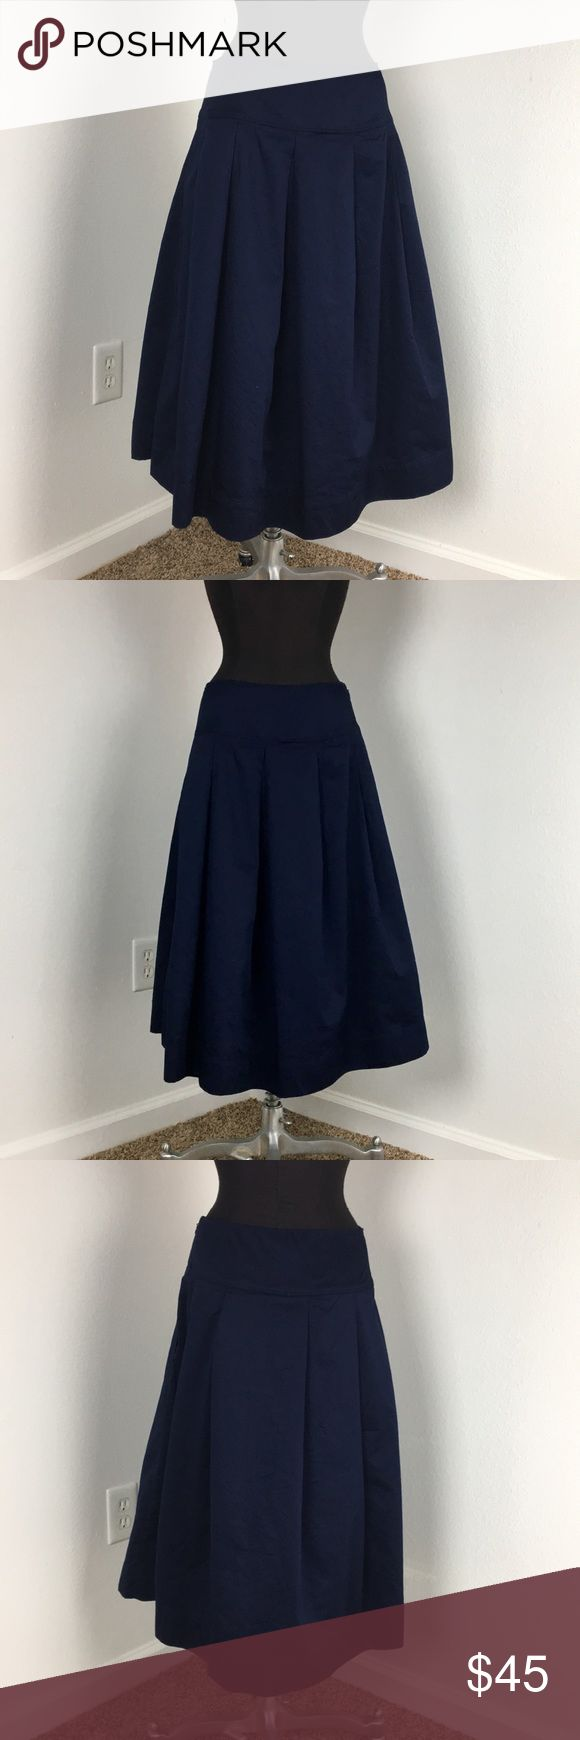 NWT Gap Full Navy A-Line Midi NWT Gap Full Navy A-Line Midi, soooo cute. Size 8P, measurements in photos. Unlined. Machine washable. 100% cotton. GAP Skirts Midi